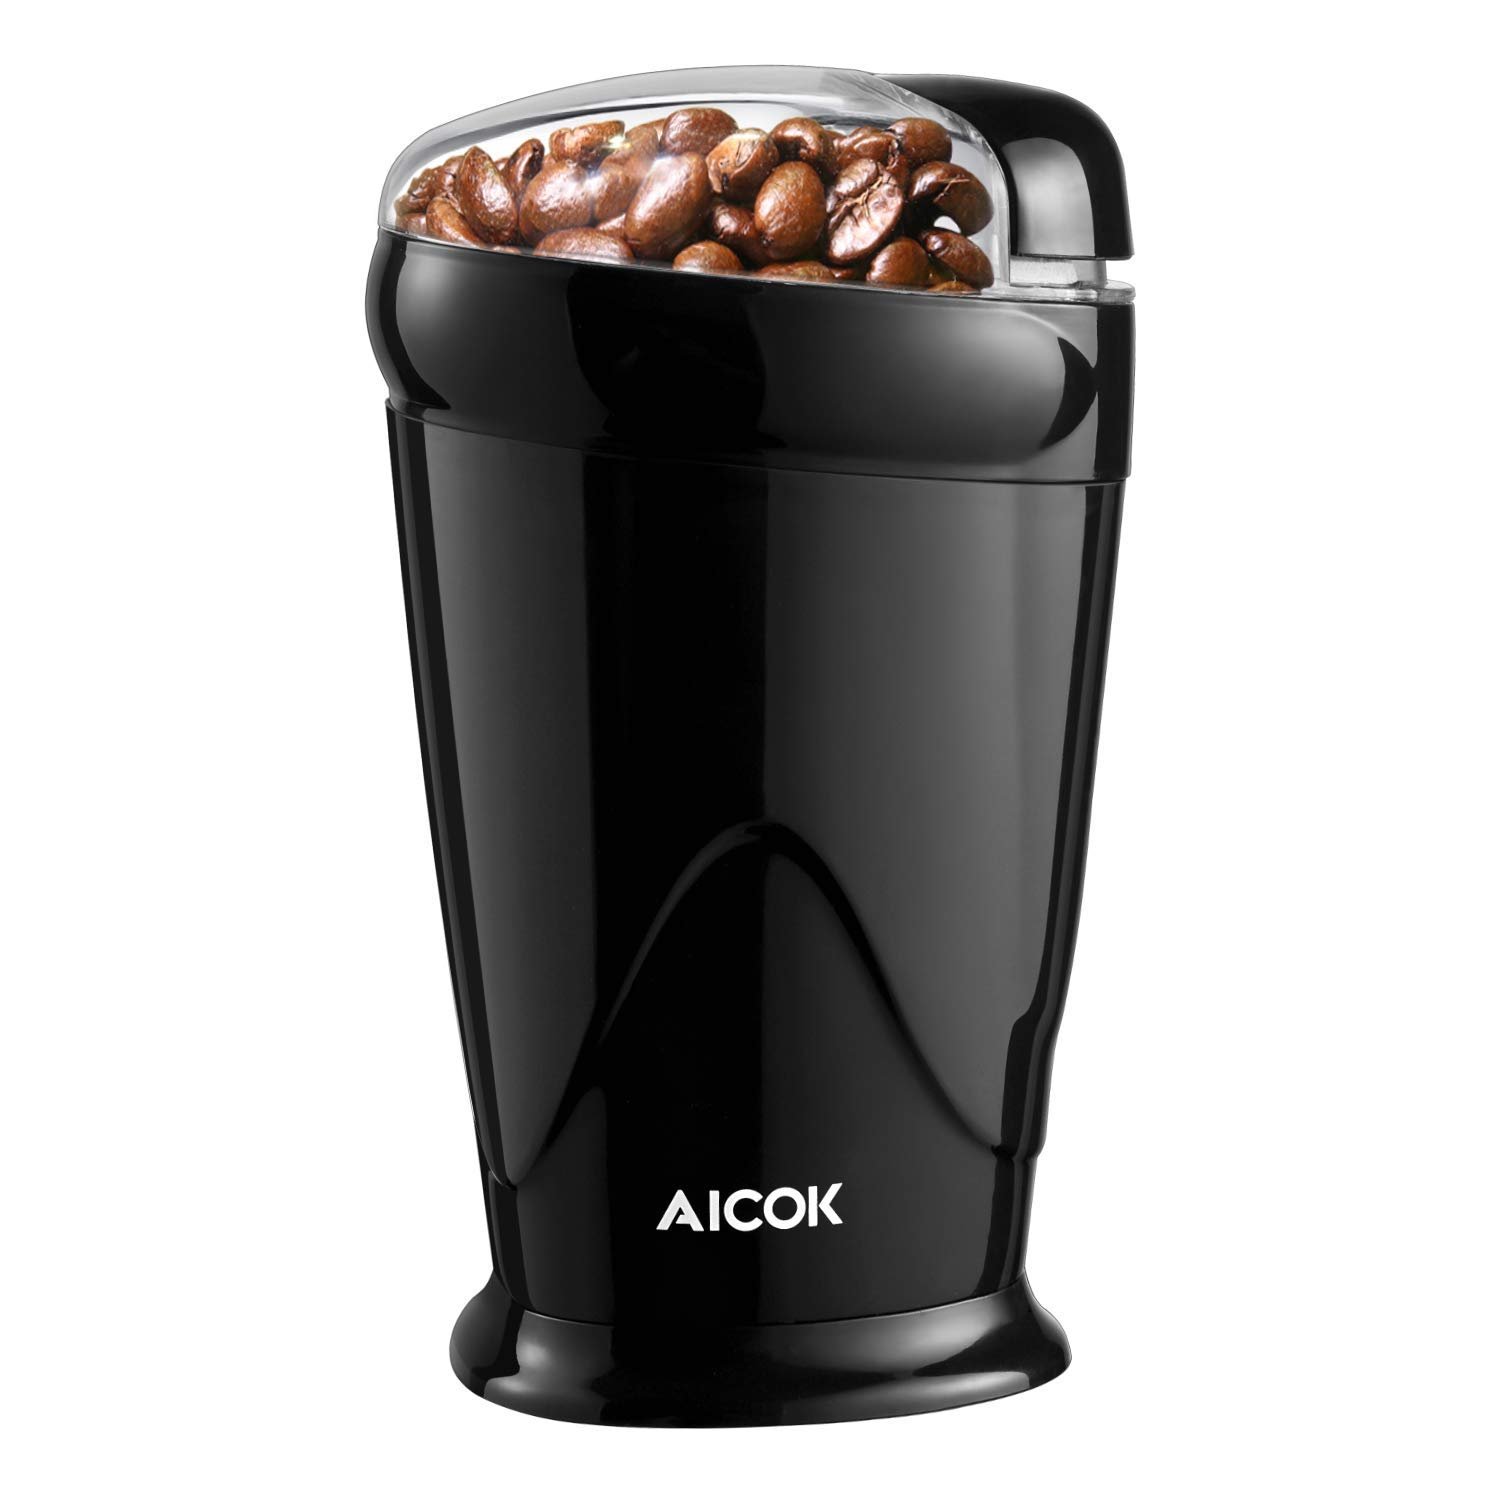 Electric Coffee Grinder, Aicok Coffee Bean Grinder Electric 12 Cup